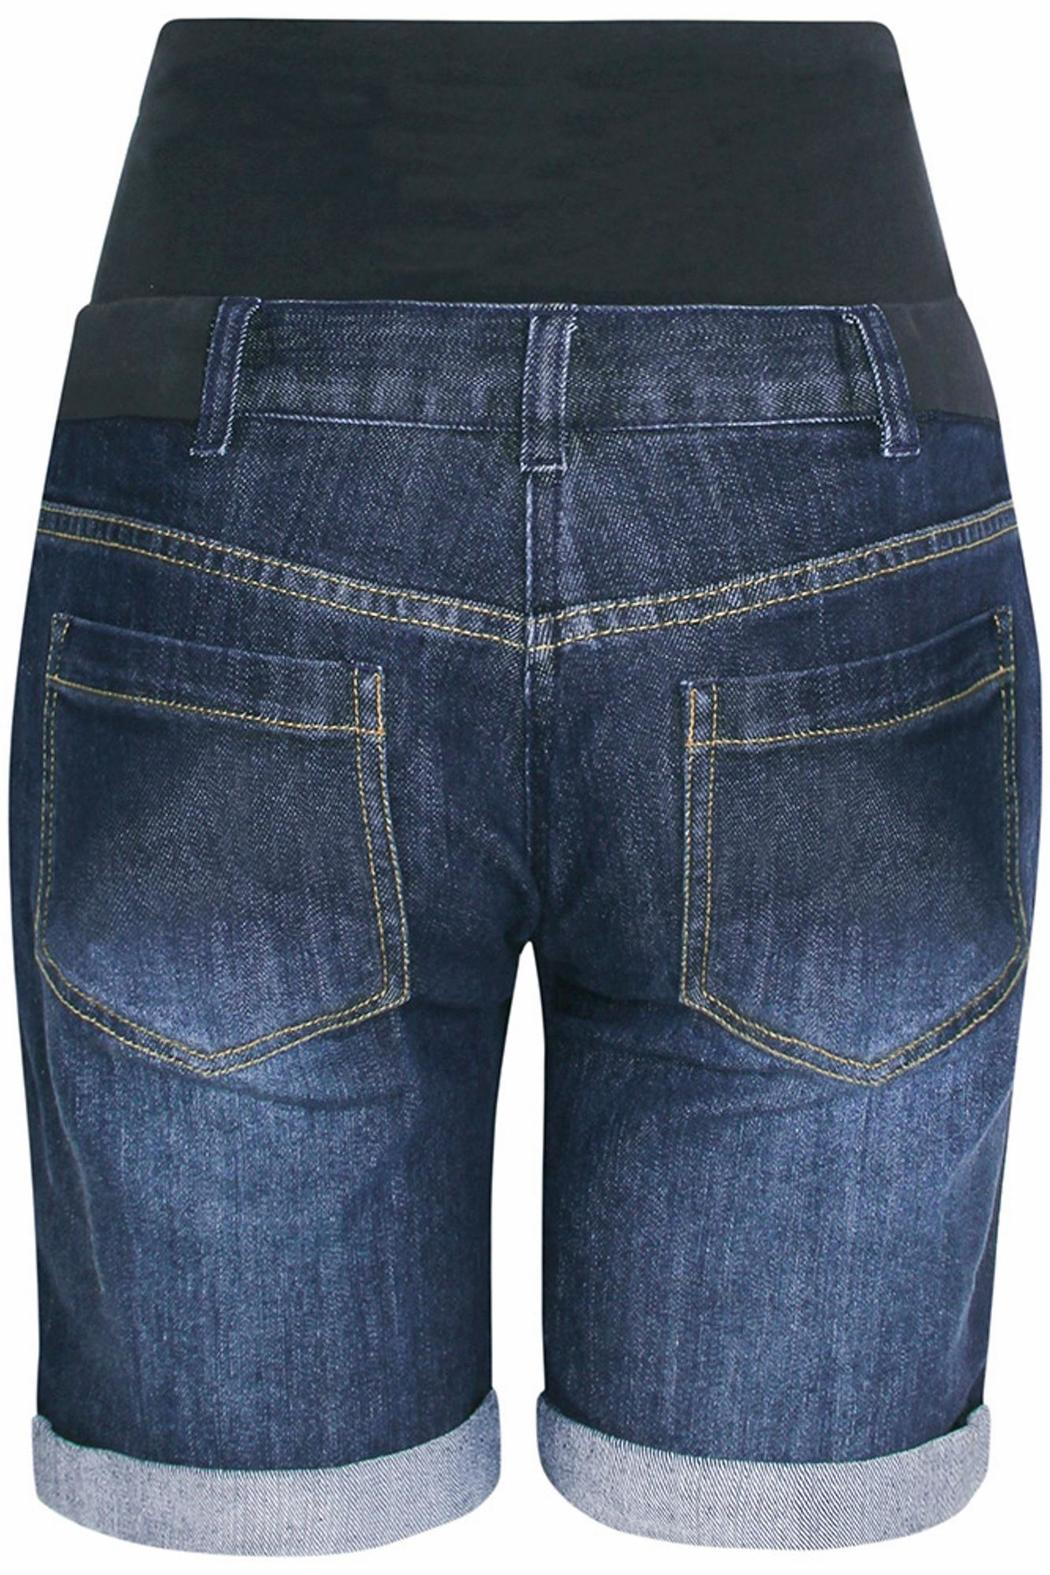 JoJo Maman Bebe Denim Maternity Shorts - Side Cropped Image